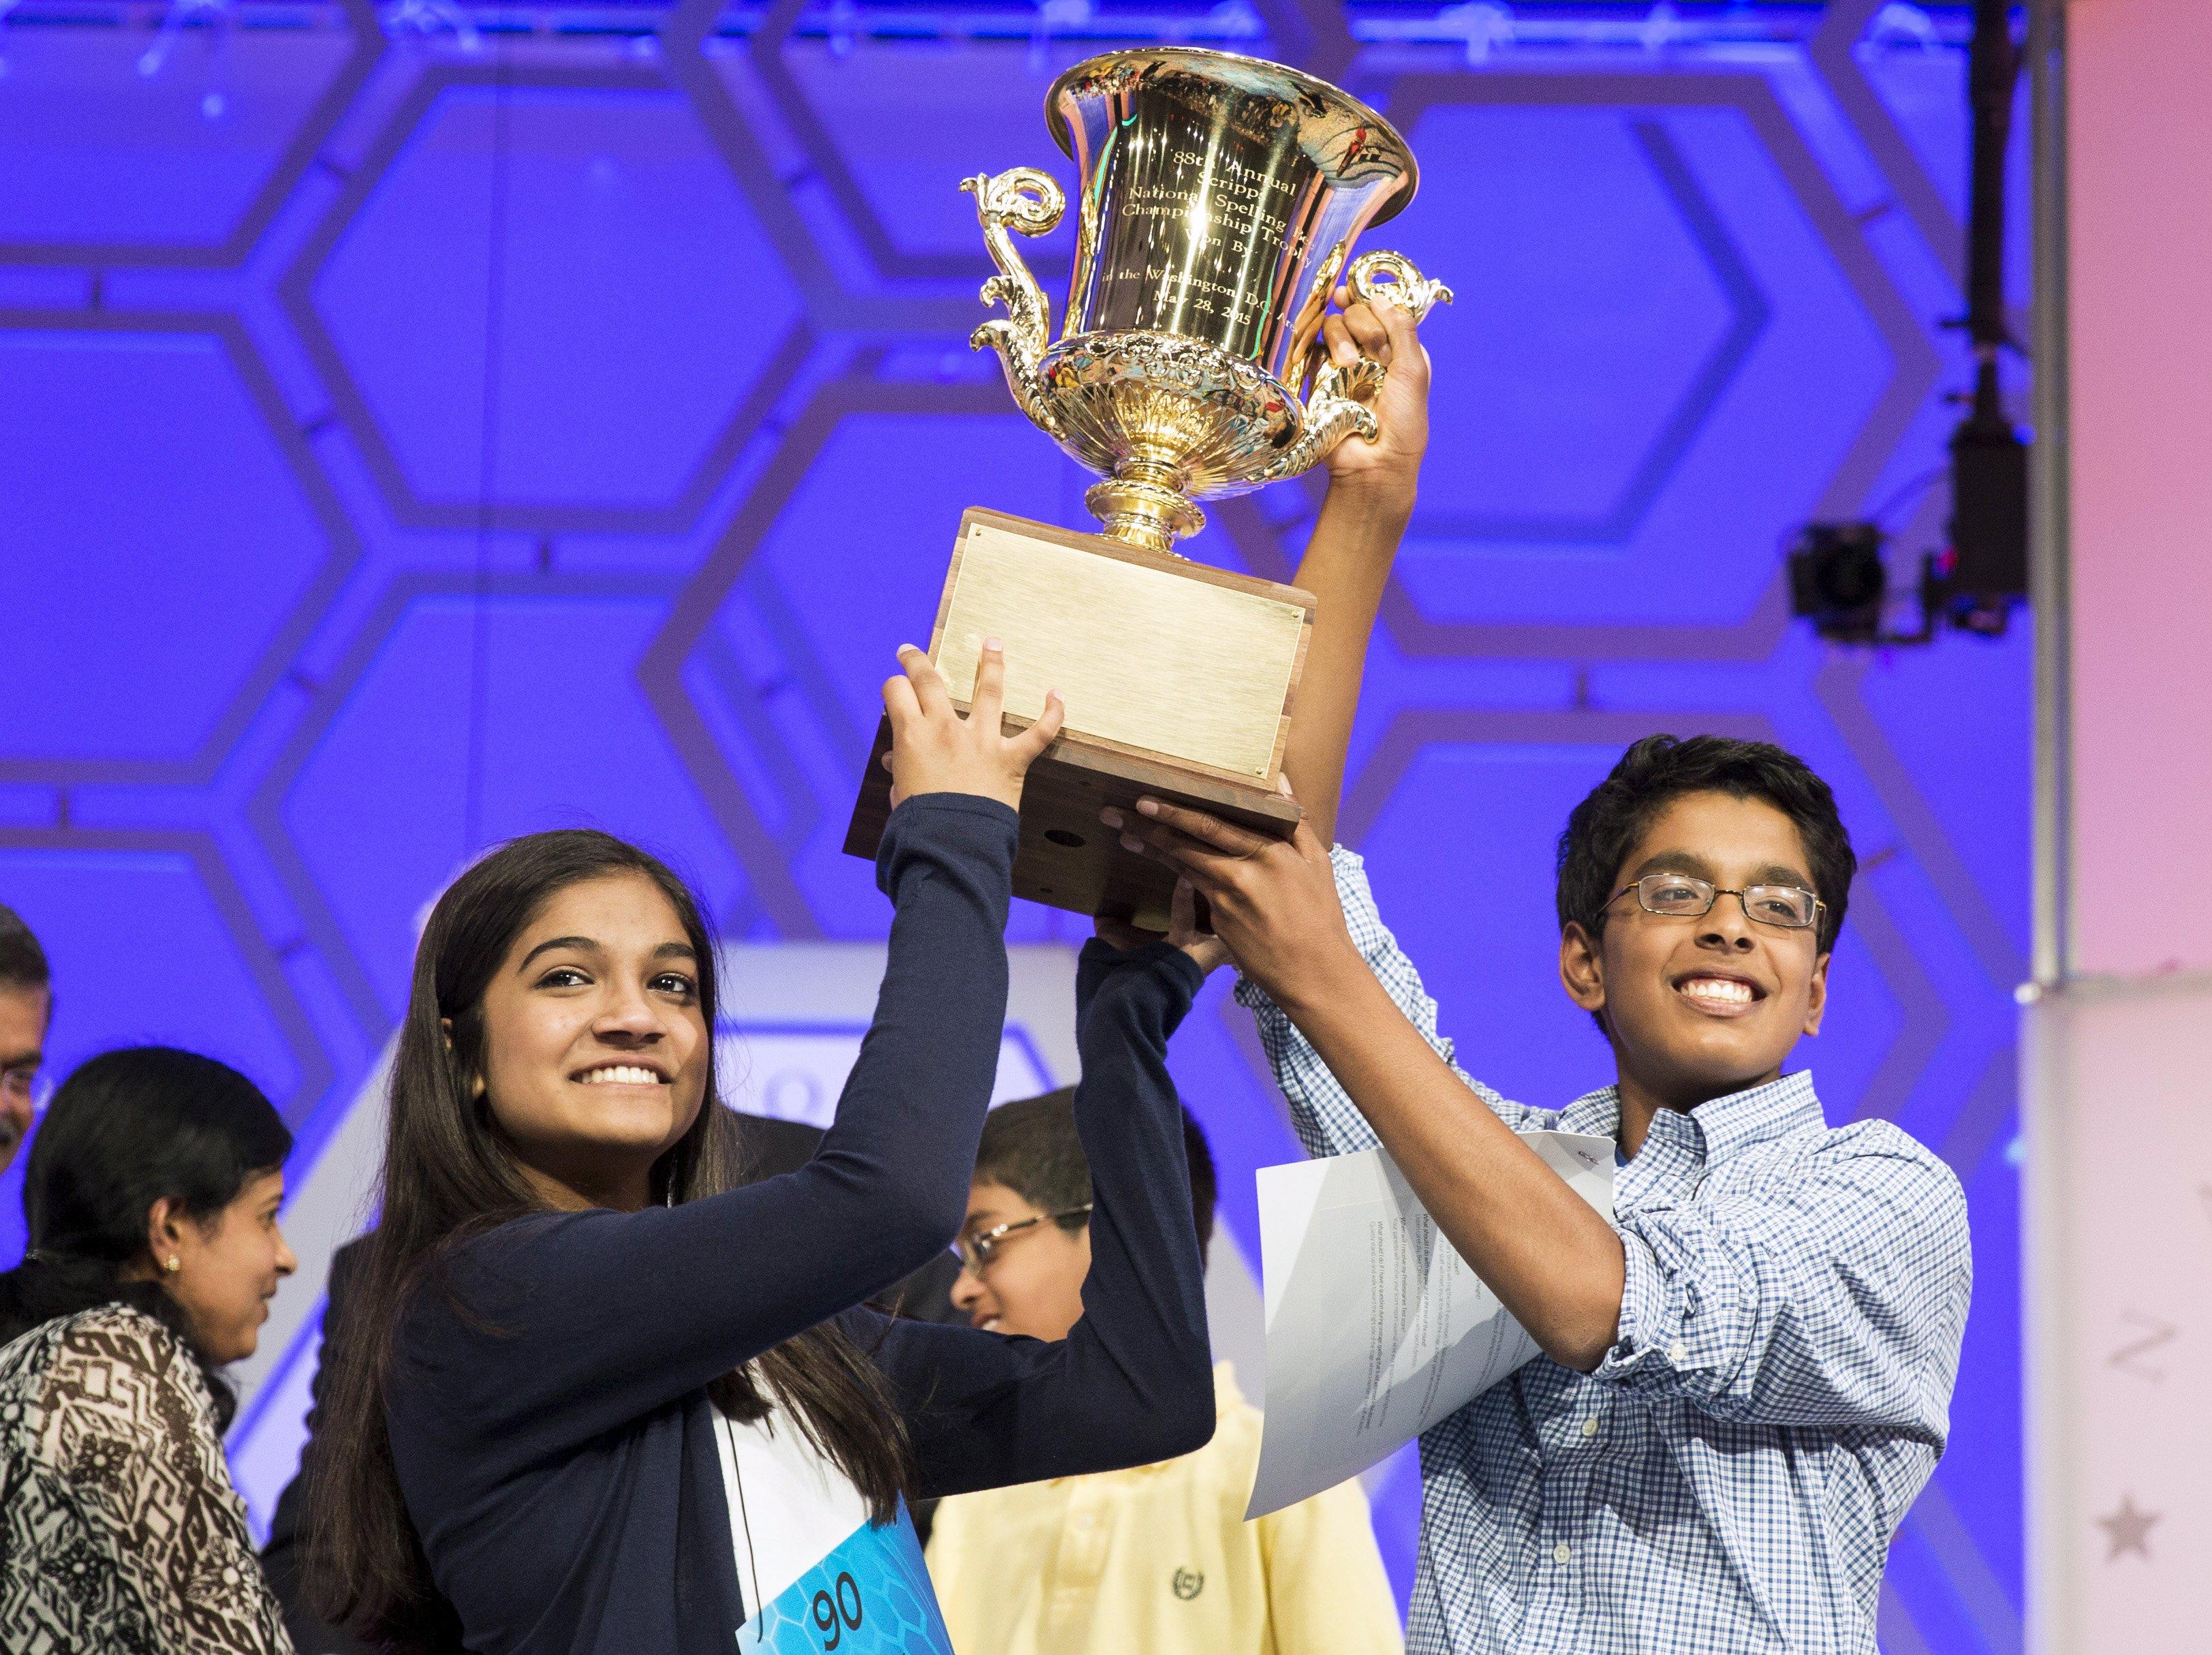 Spelling Bee champs battle to a tie